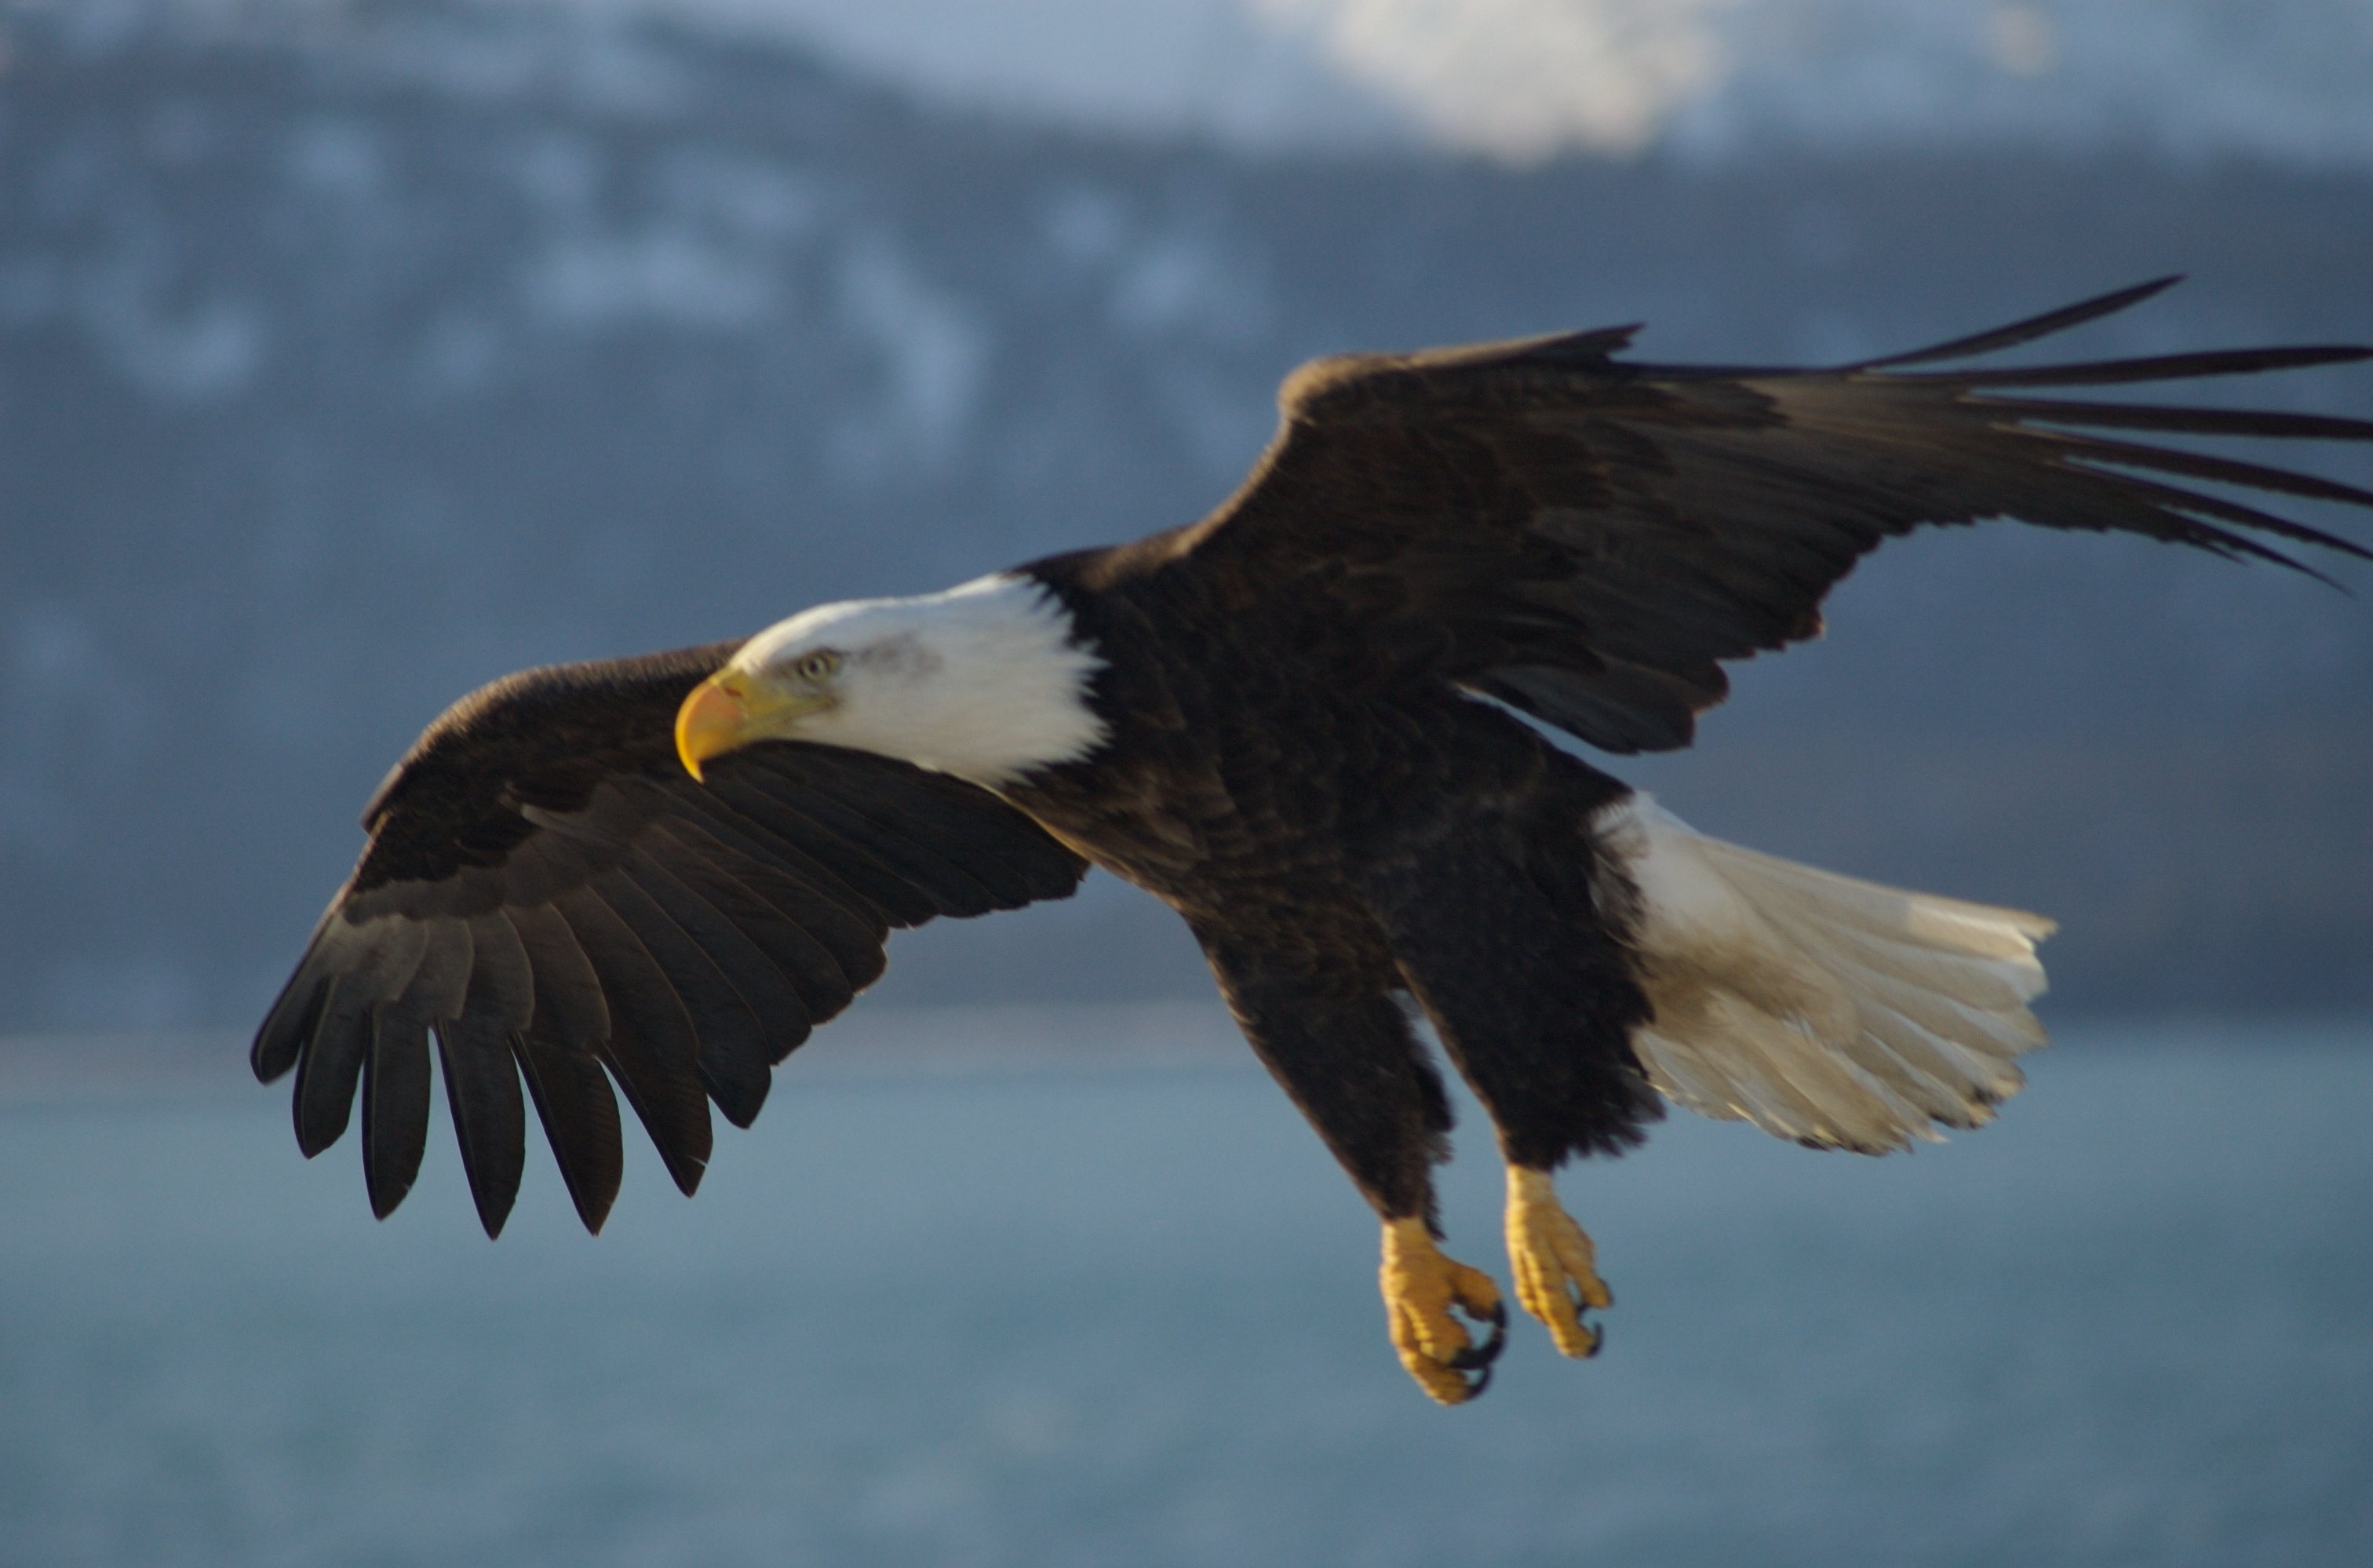 Animal Galleries, pictures of animals from around the world | Birds | Eagles  | Bald Eagle | Bald American Eagle picture aguila Bald_Eagle_Alaska_(10)